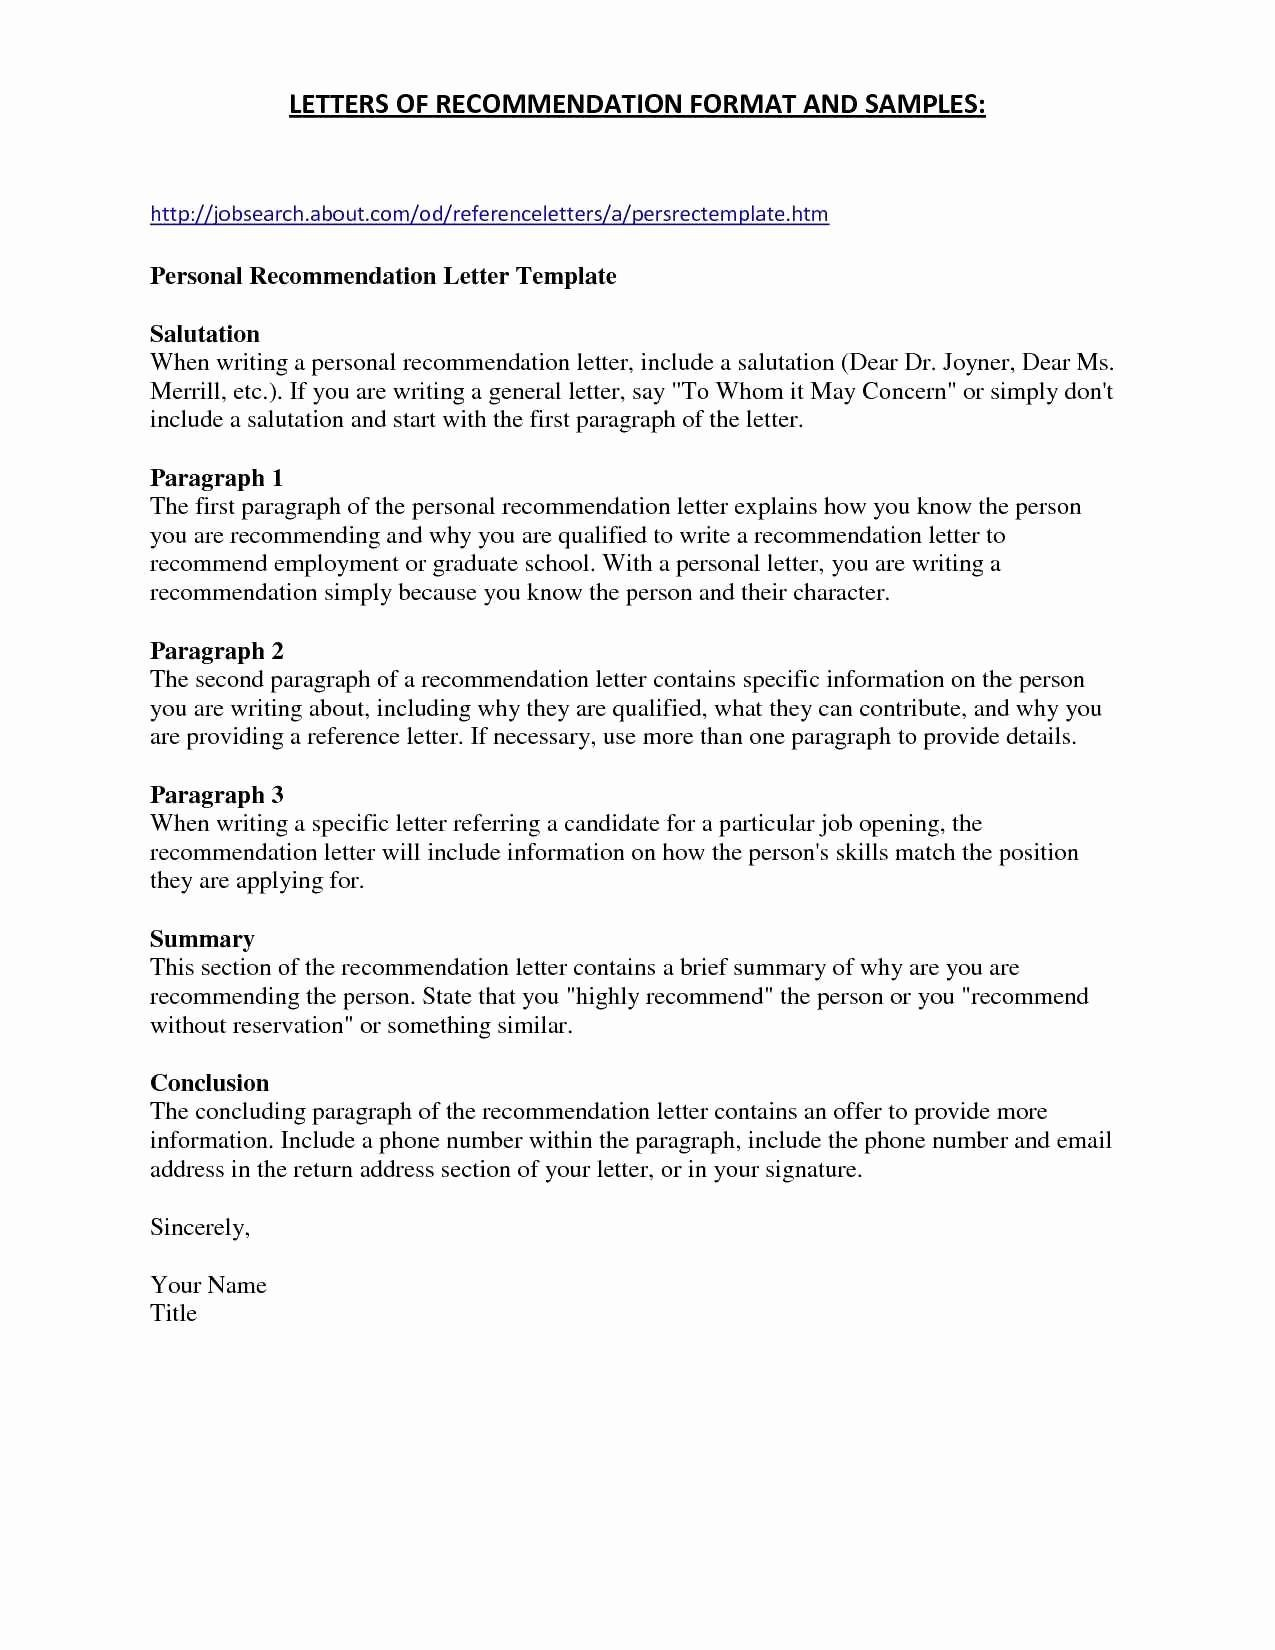 T Cover Letter Template - Cover Letter to Consultant for Job Best New Job Fer Letter Template